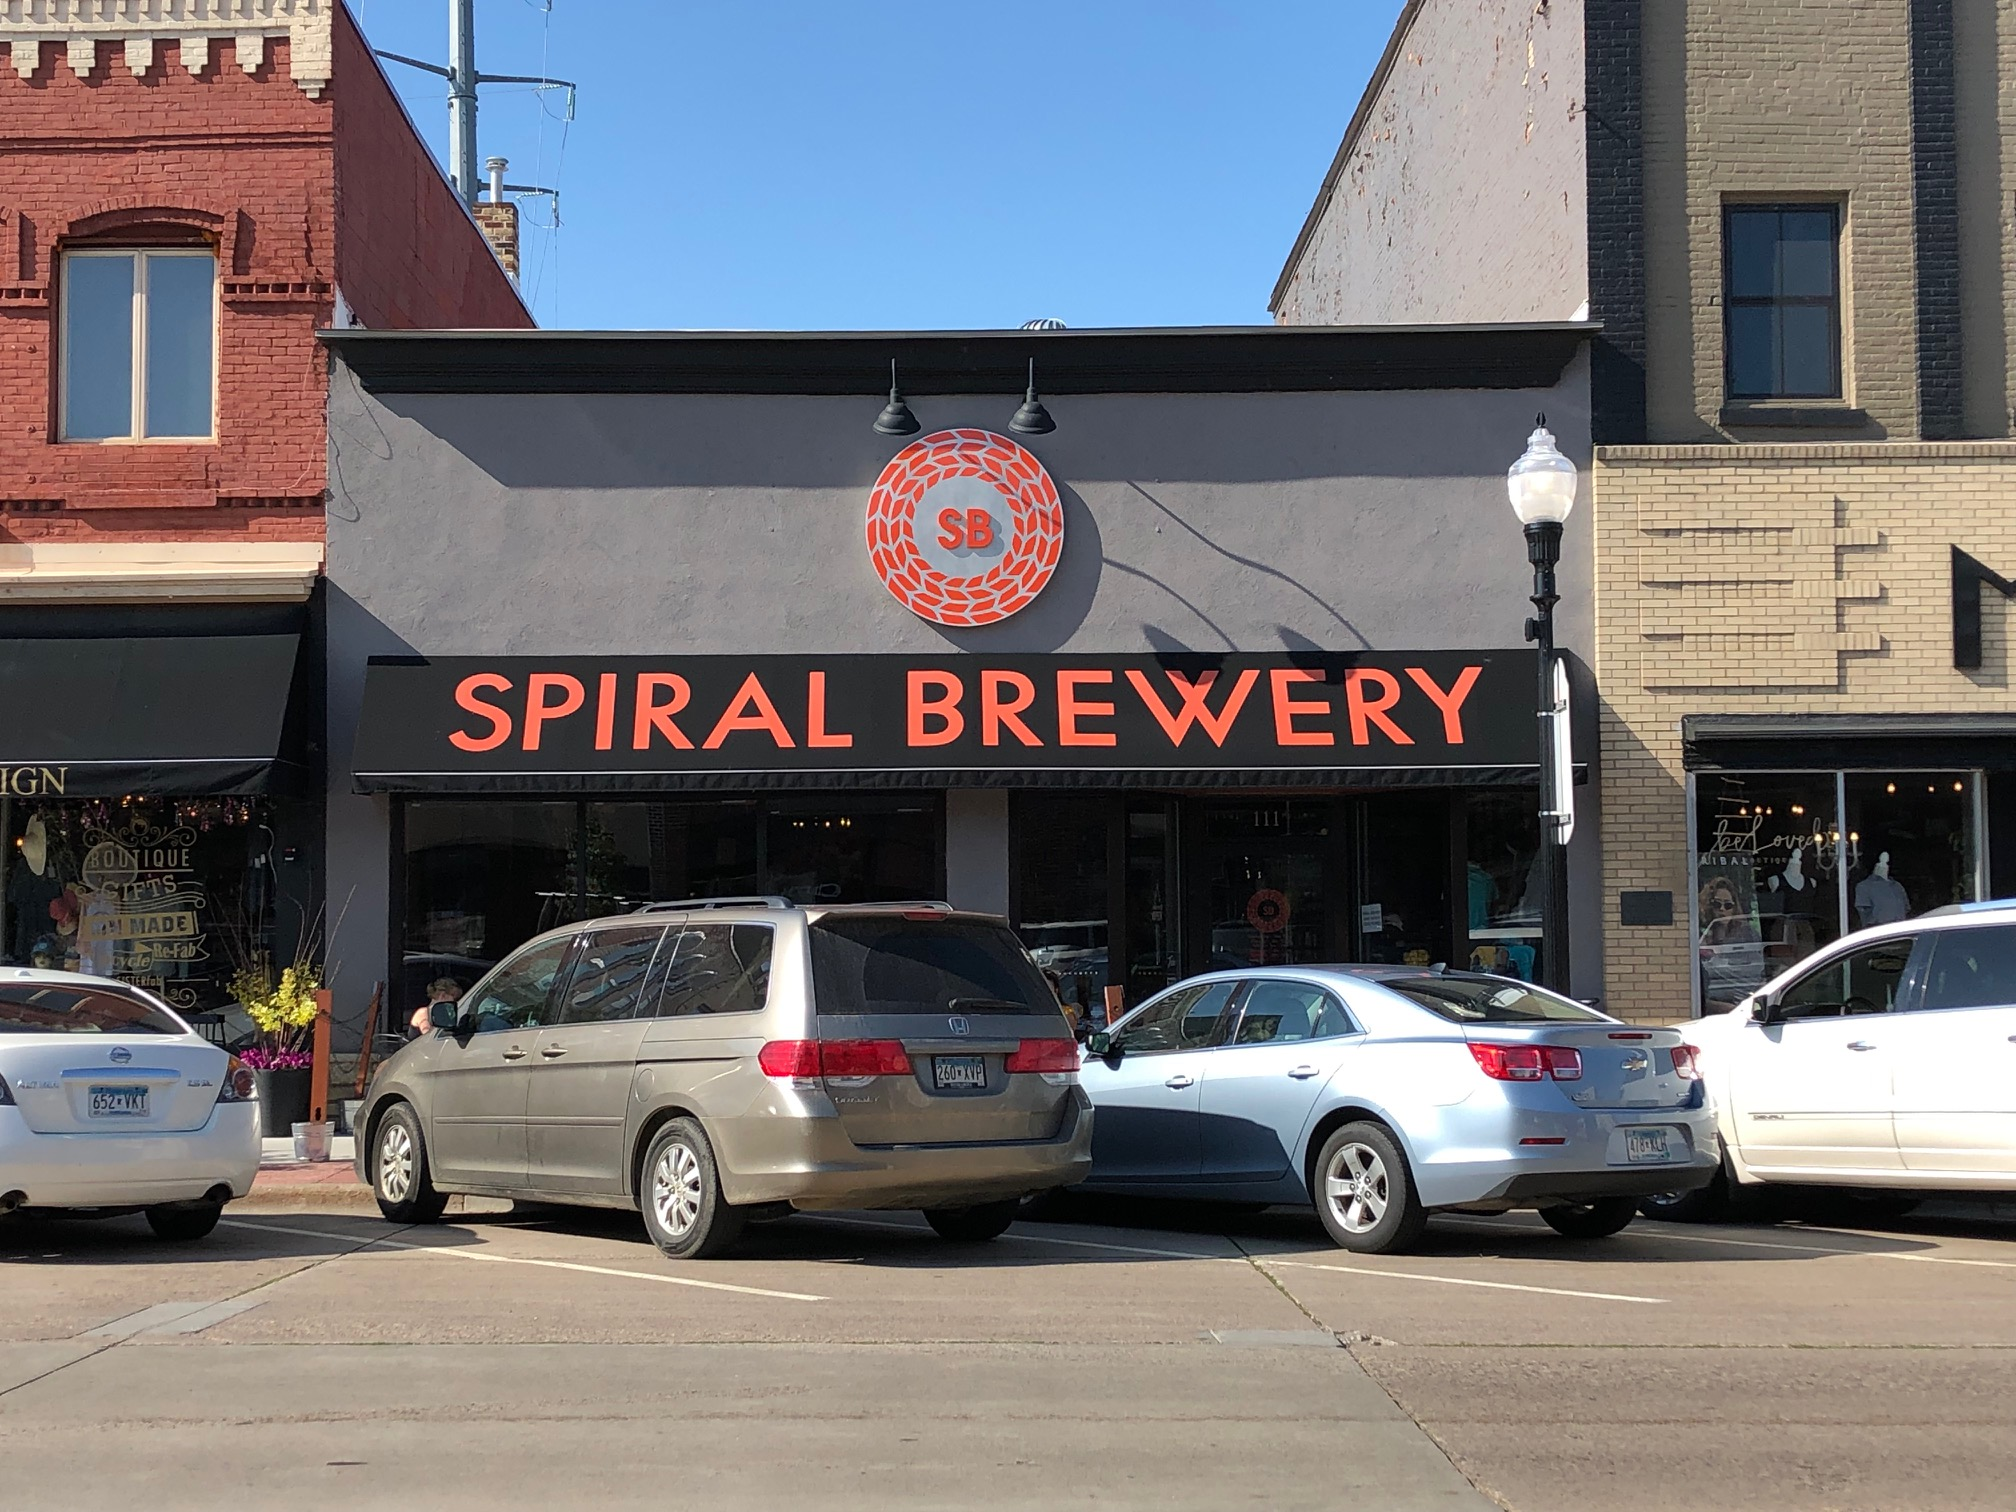 The Best of the Twin Cities: Beef & Brews - Spiral Brewery & The Busted Nut